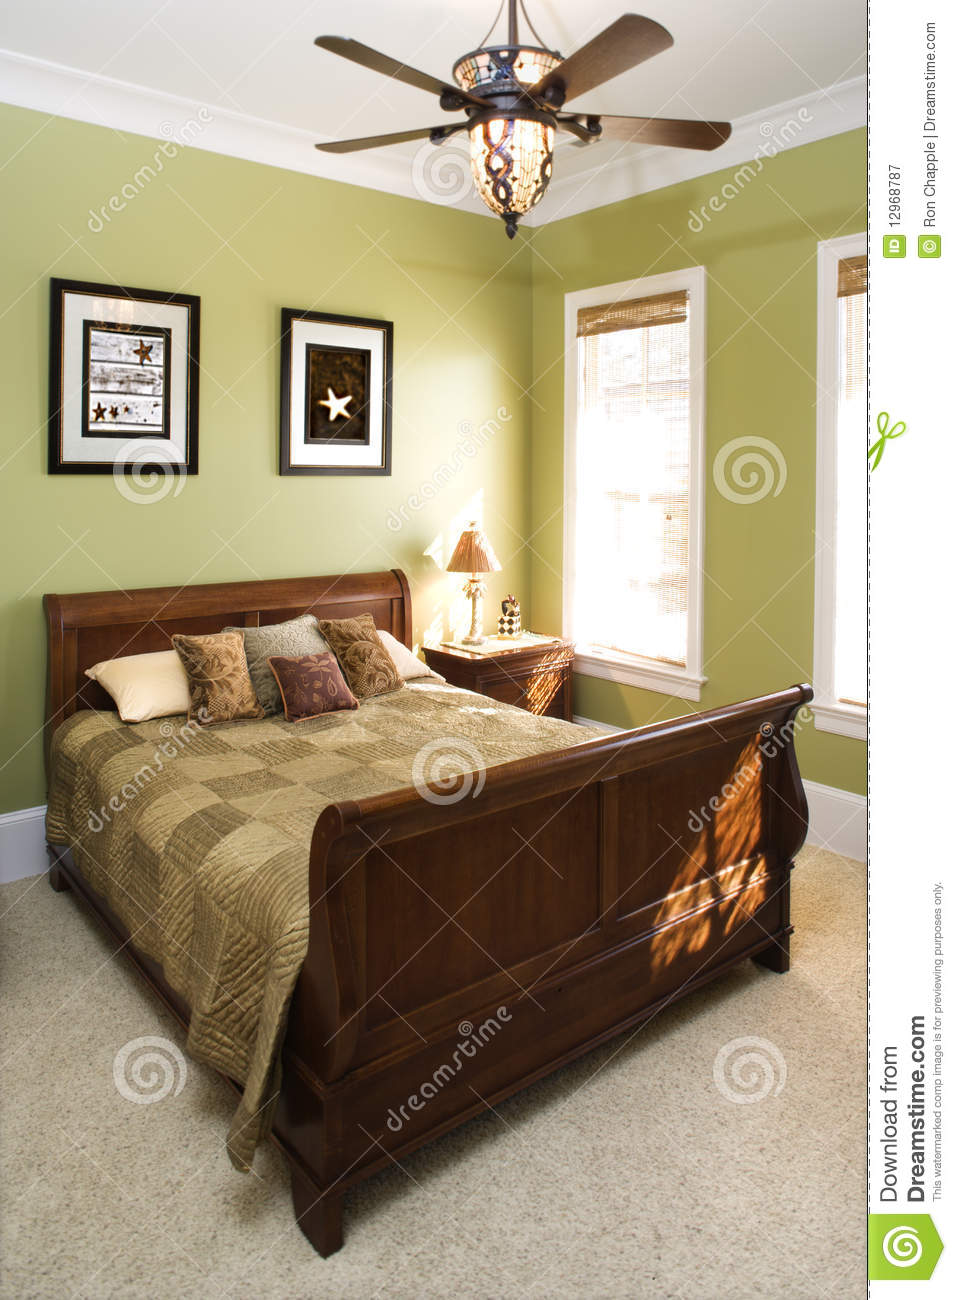 Green Bedroom With Ceiling Fan Royalty Free Stock